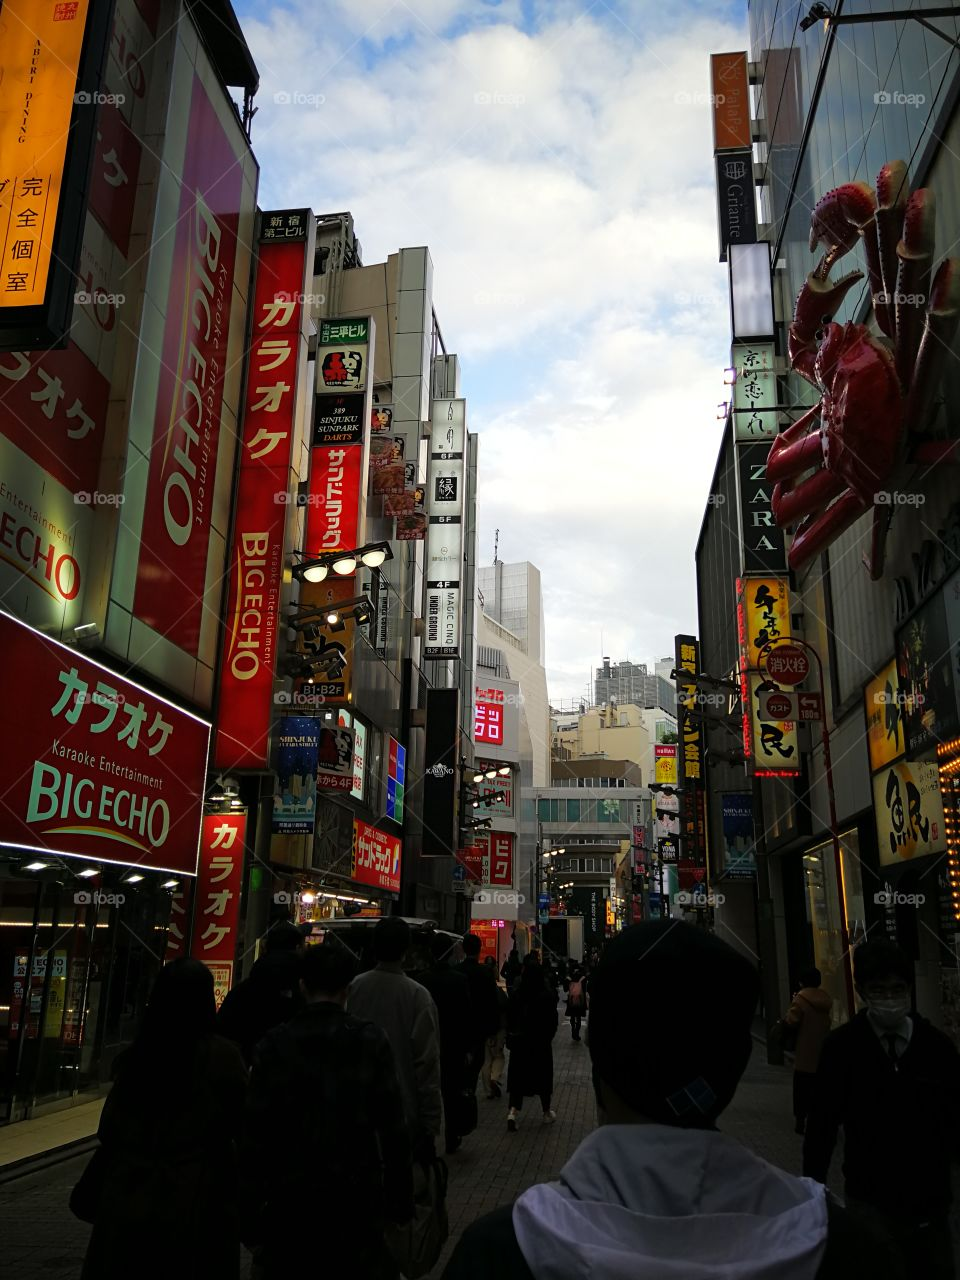 Walking in the streets of Japan